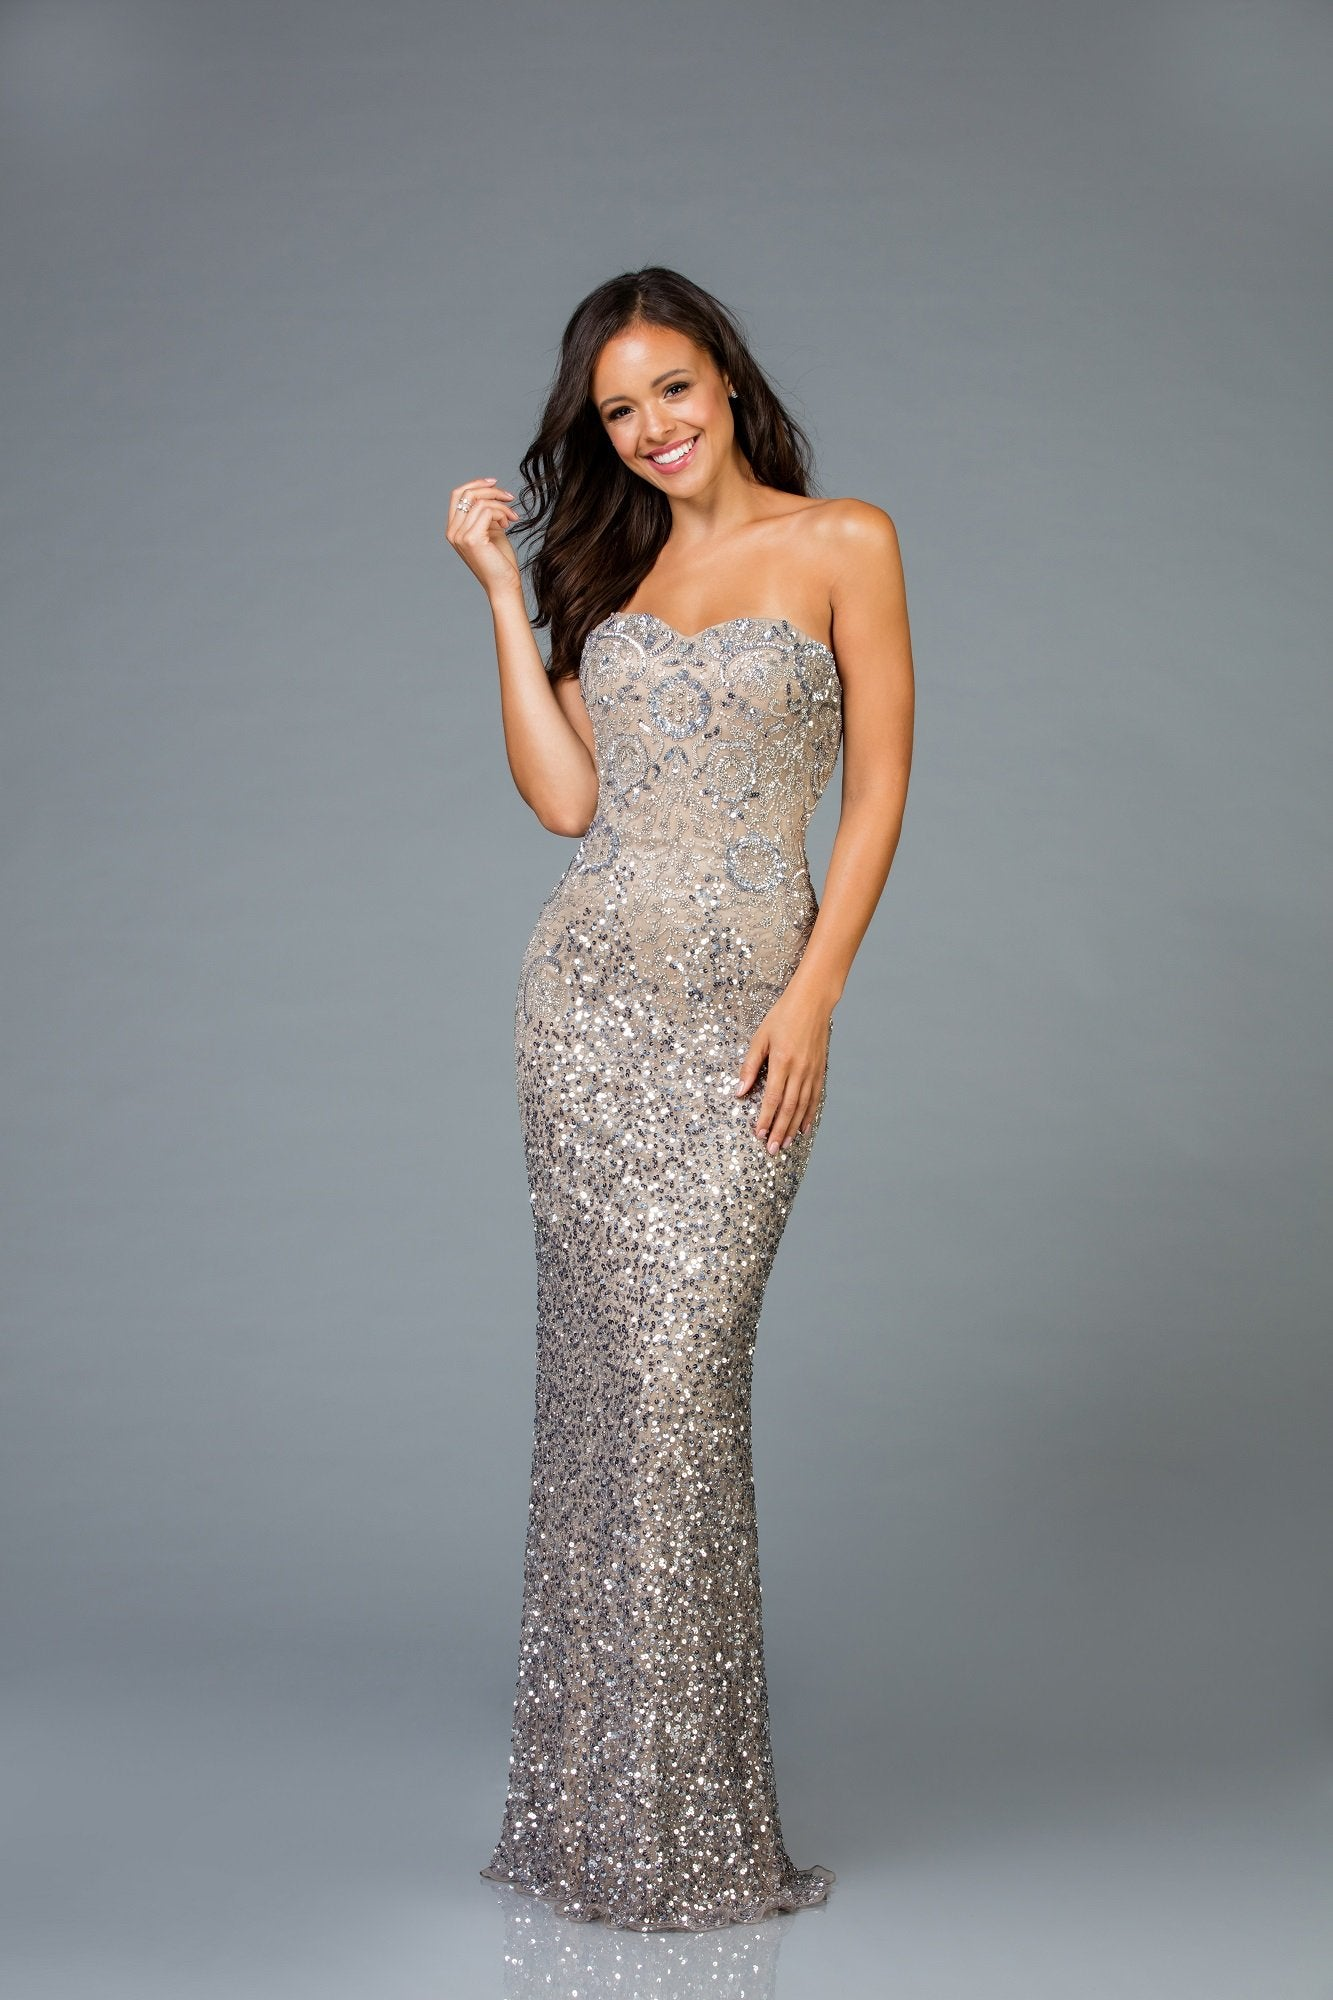 Scala Strapless Sequins Dress 48942 - Elbisny